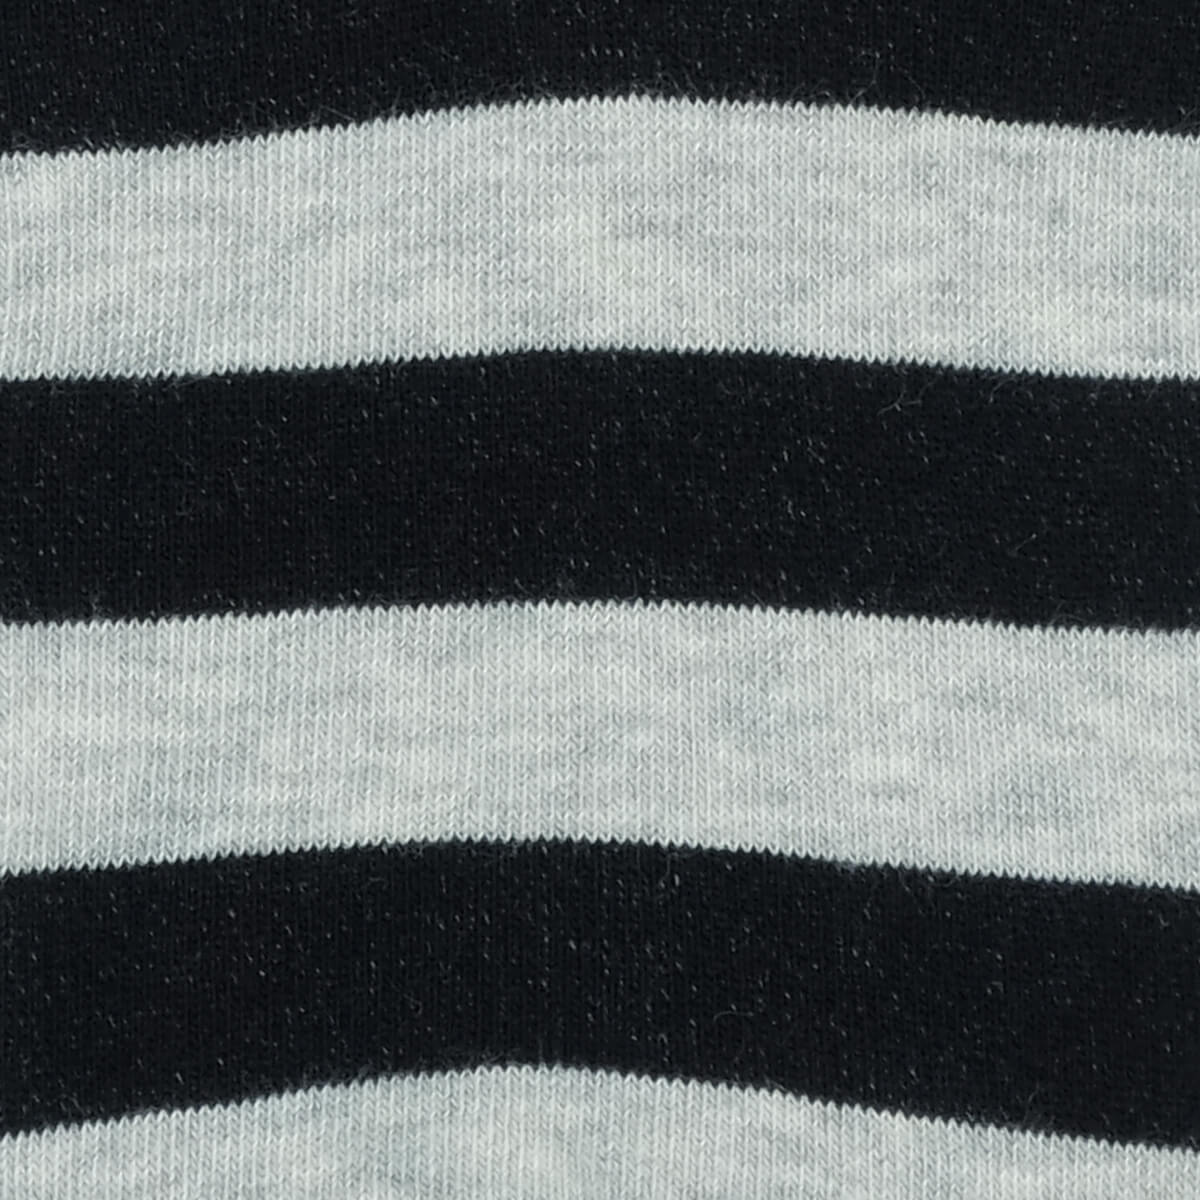 Womens Socks - Rugby Stripes Women's Socks - Black/Grey⎪Etiquette Clothiers